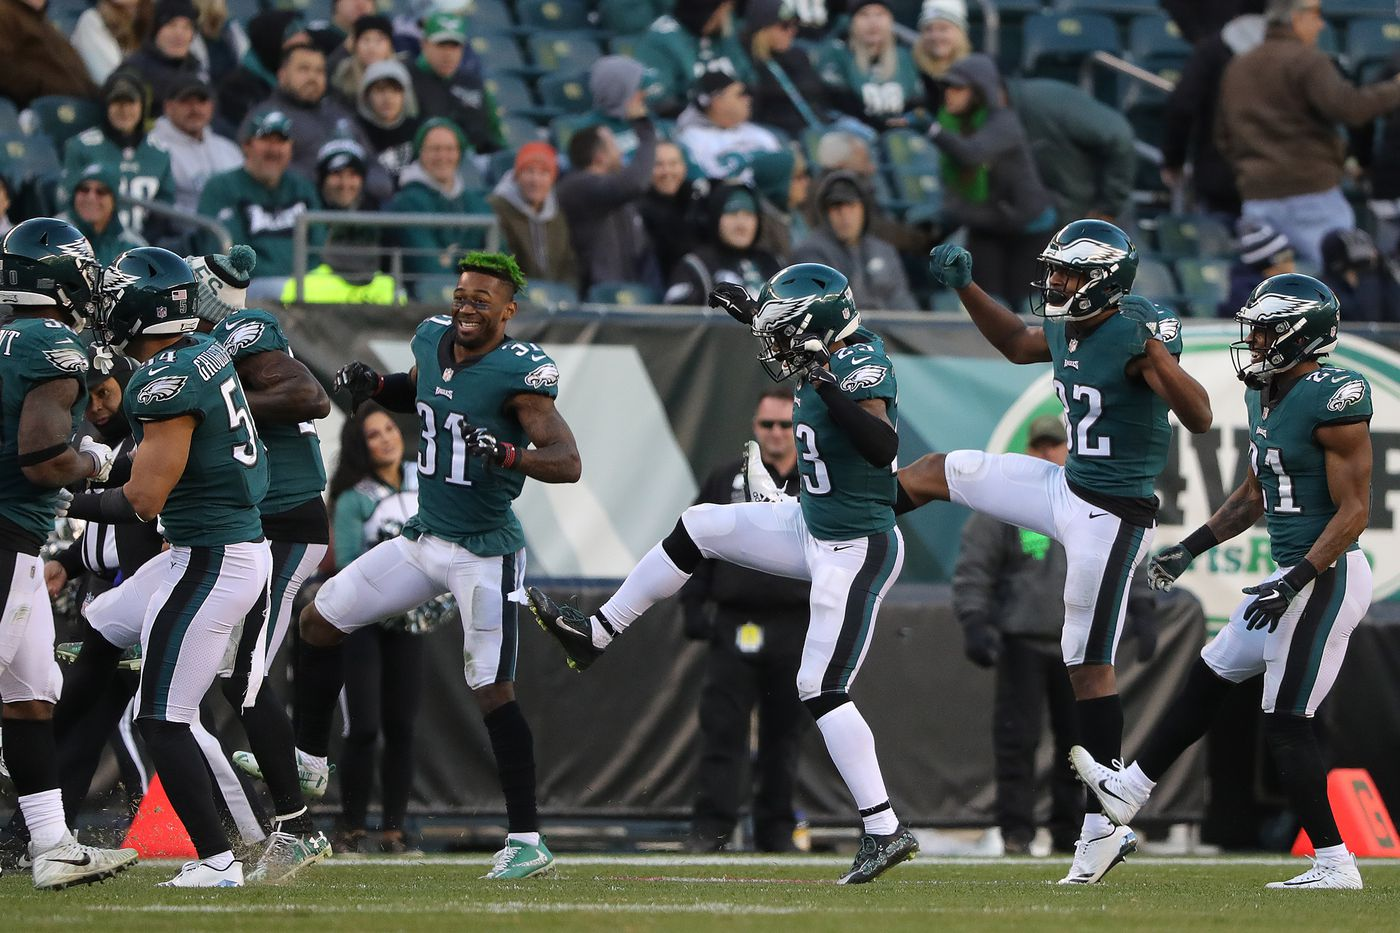 Doug Pederson will continue to hone the Eagles' culture during training camp | Early Birds